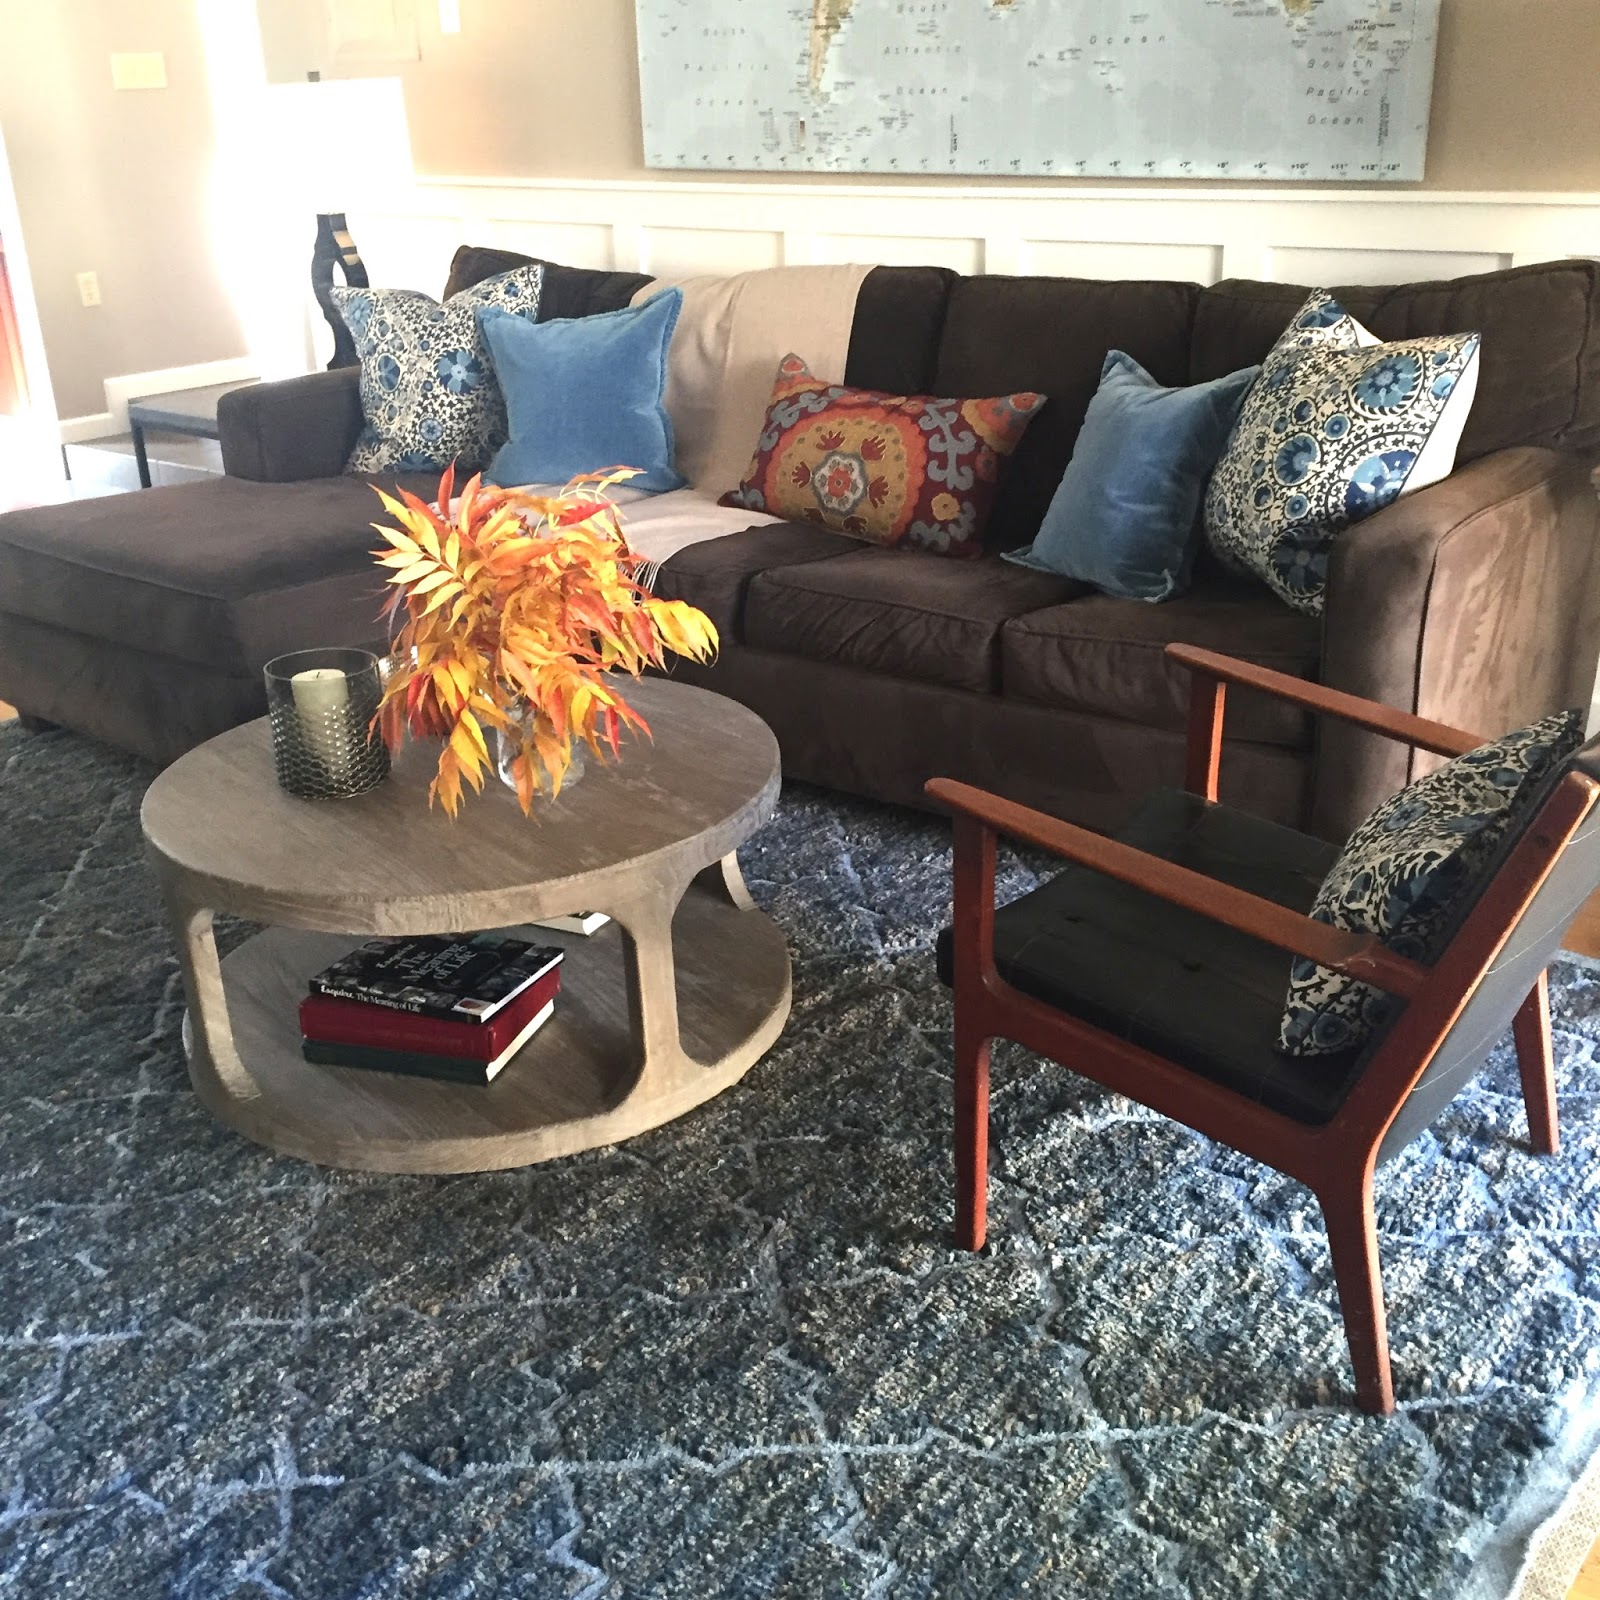 Restoration Hardware Coffee Table At Home And Interior Design Ideas # Restoration Hardware Muebles